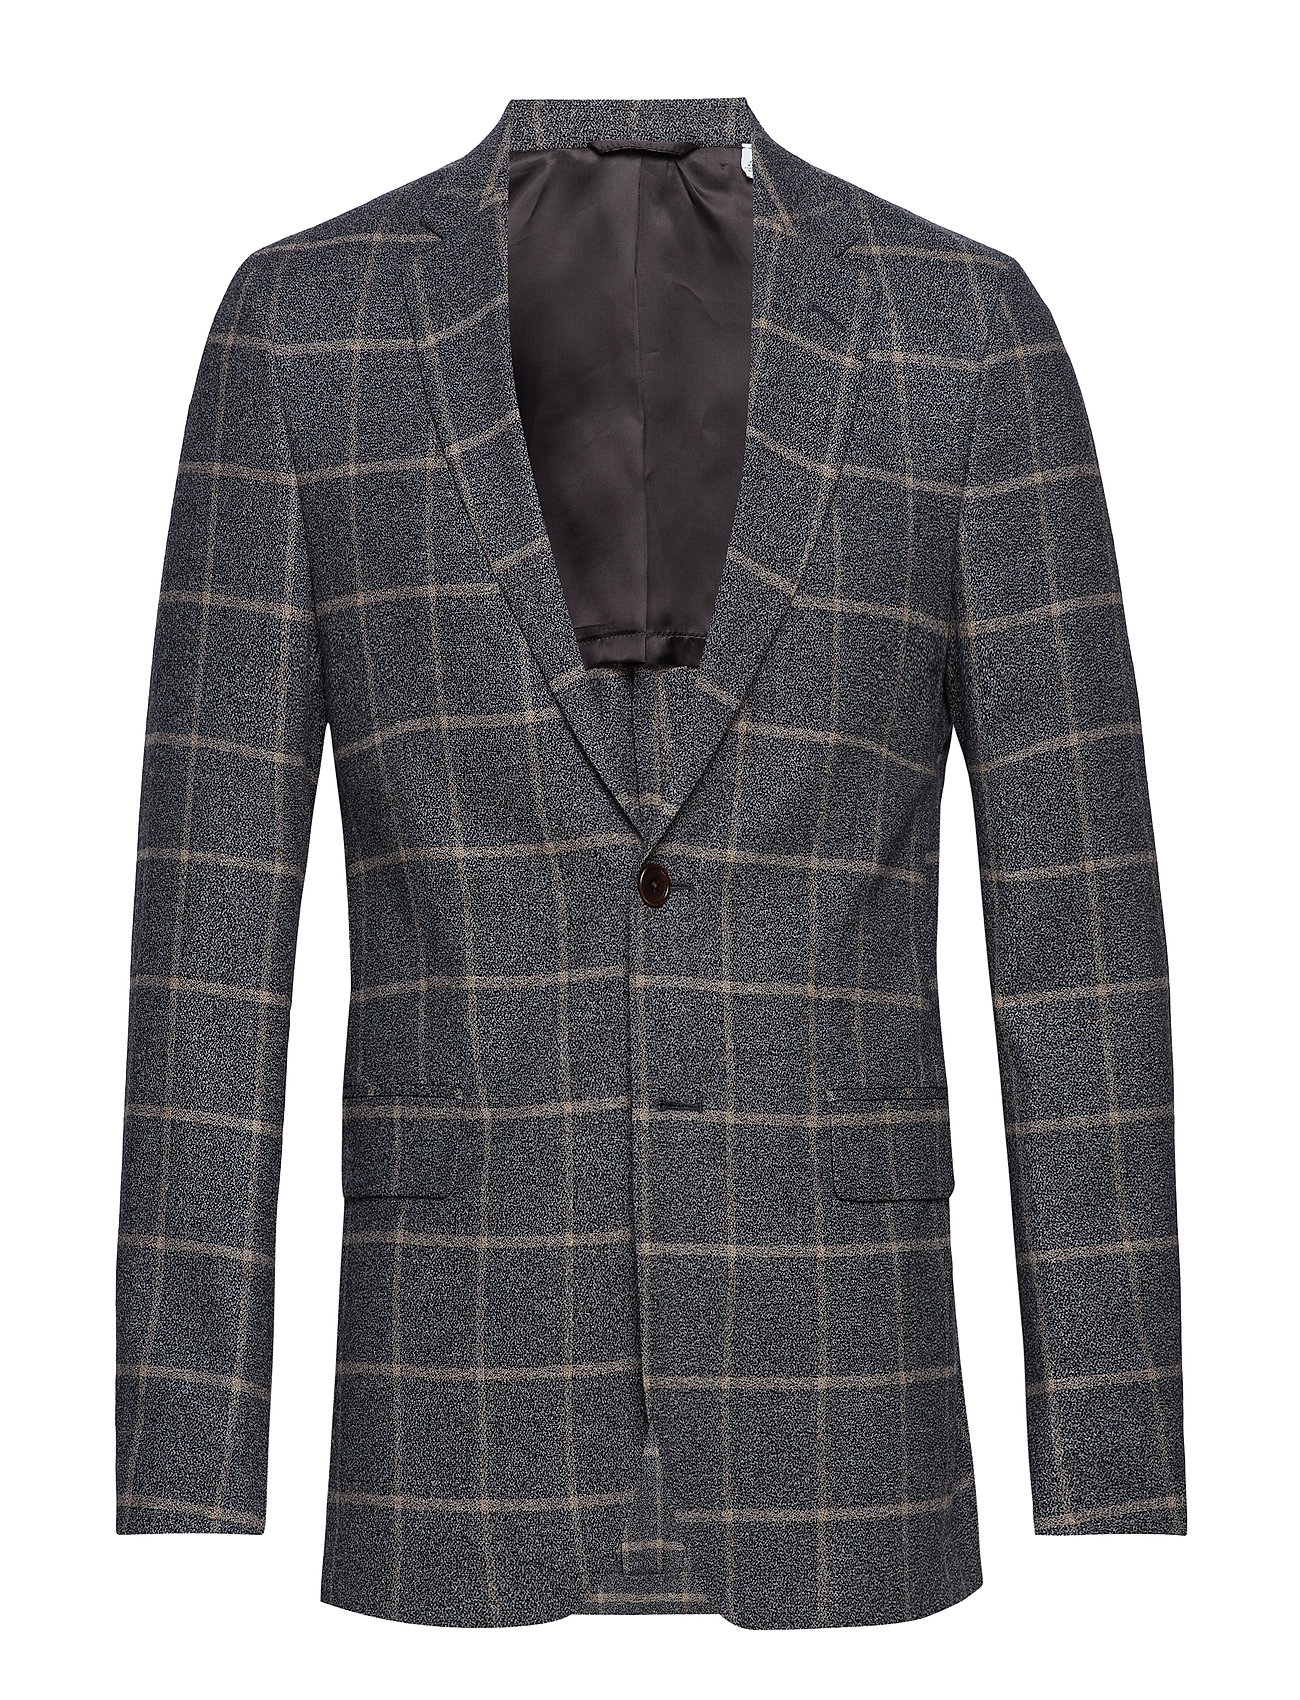 Gant G2. THE WINDOWPANE SPORTS COAT - GREY MELANGE